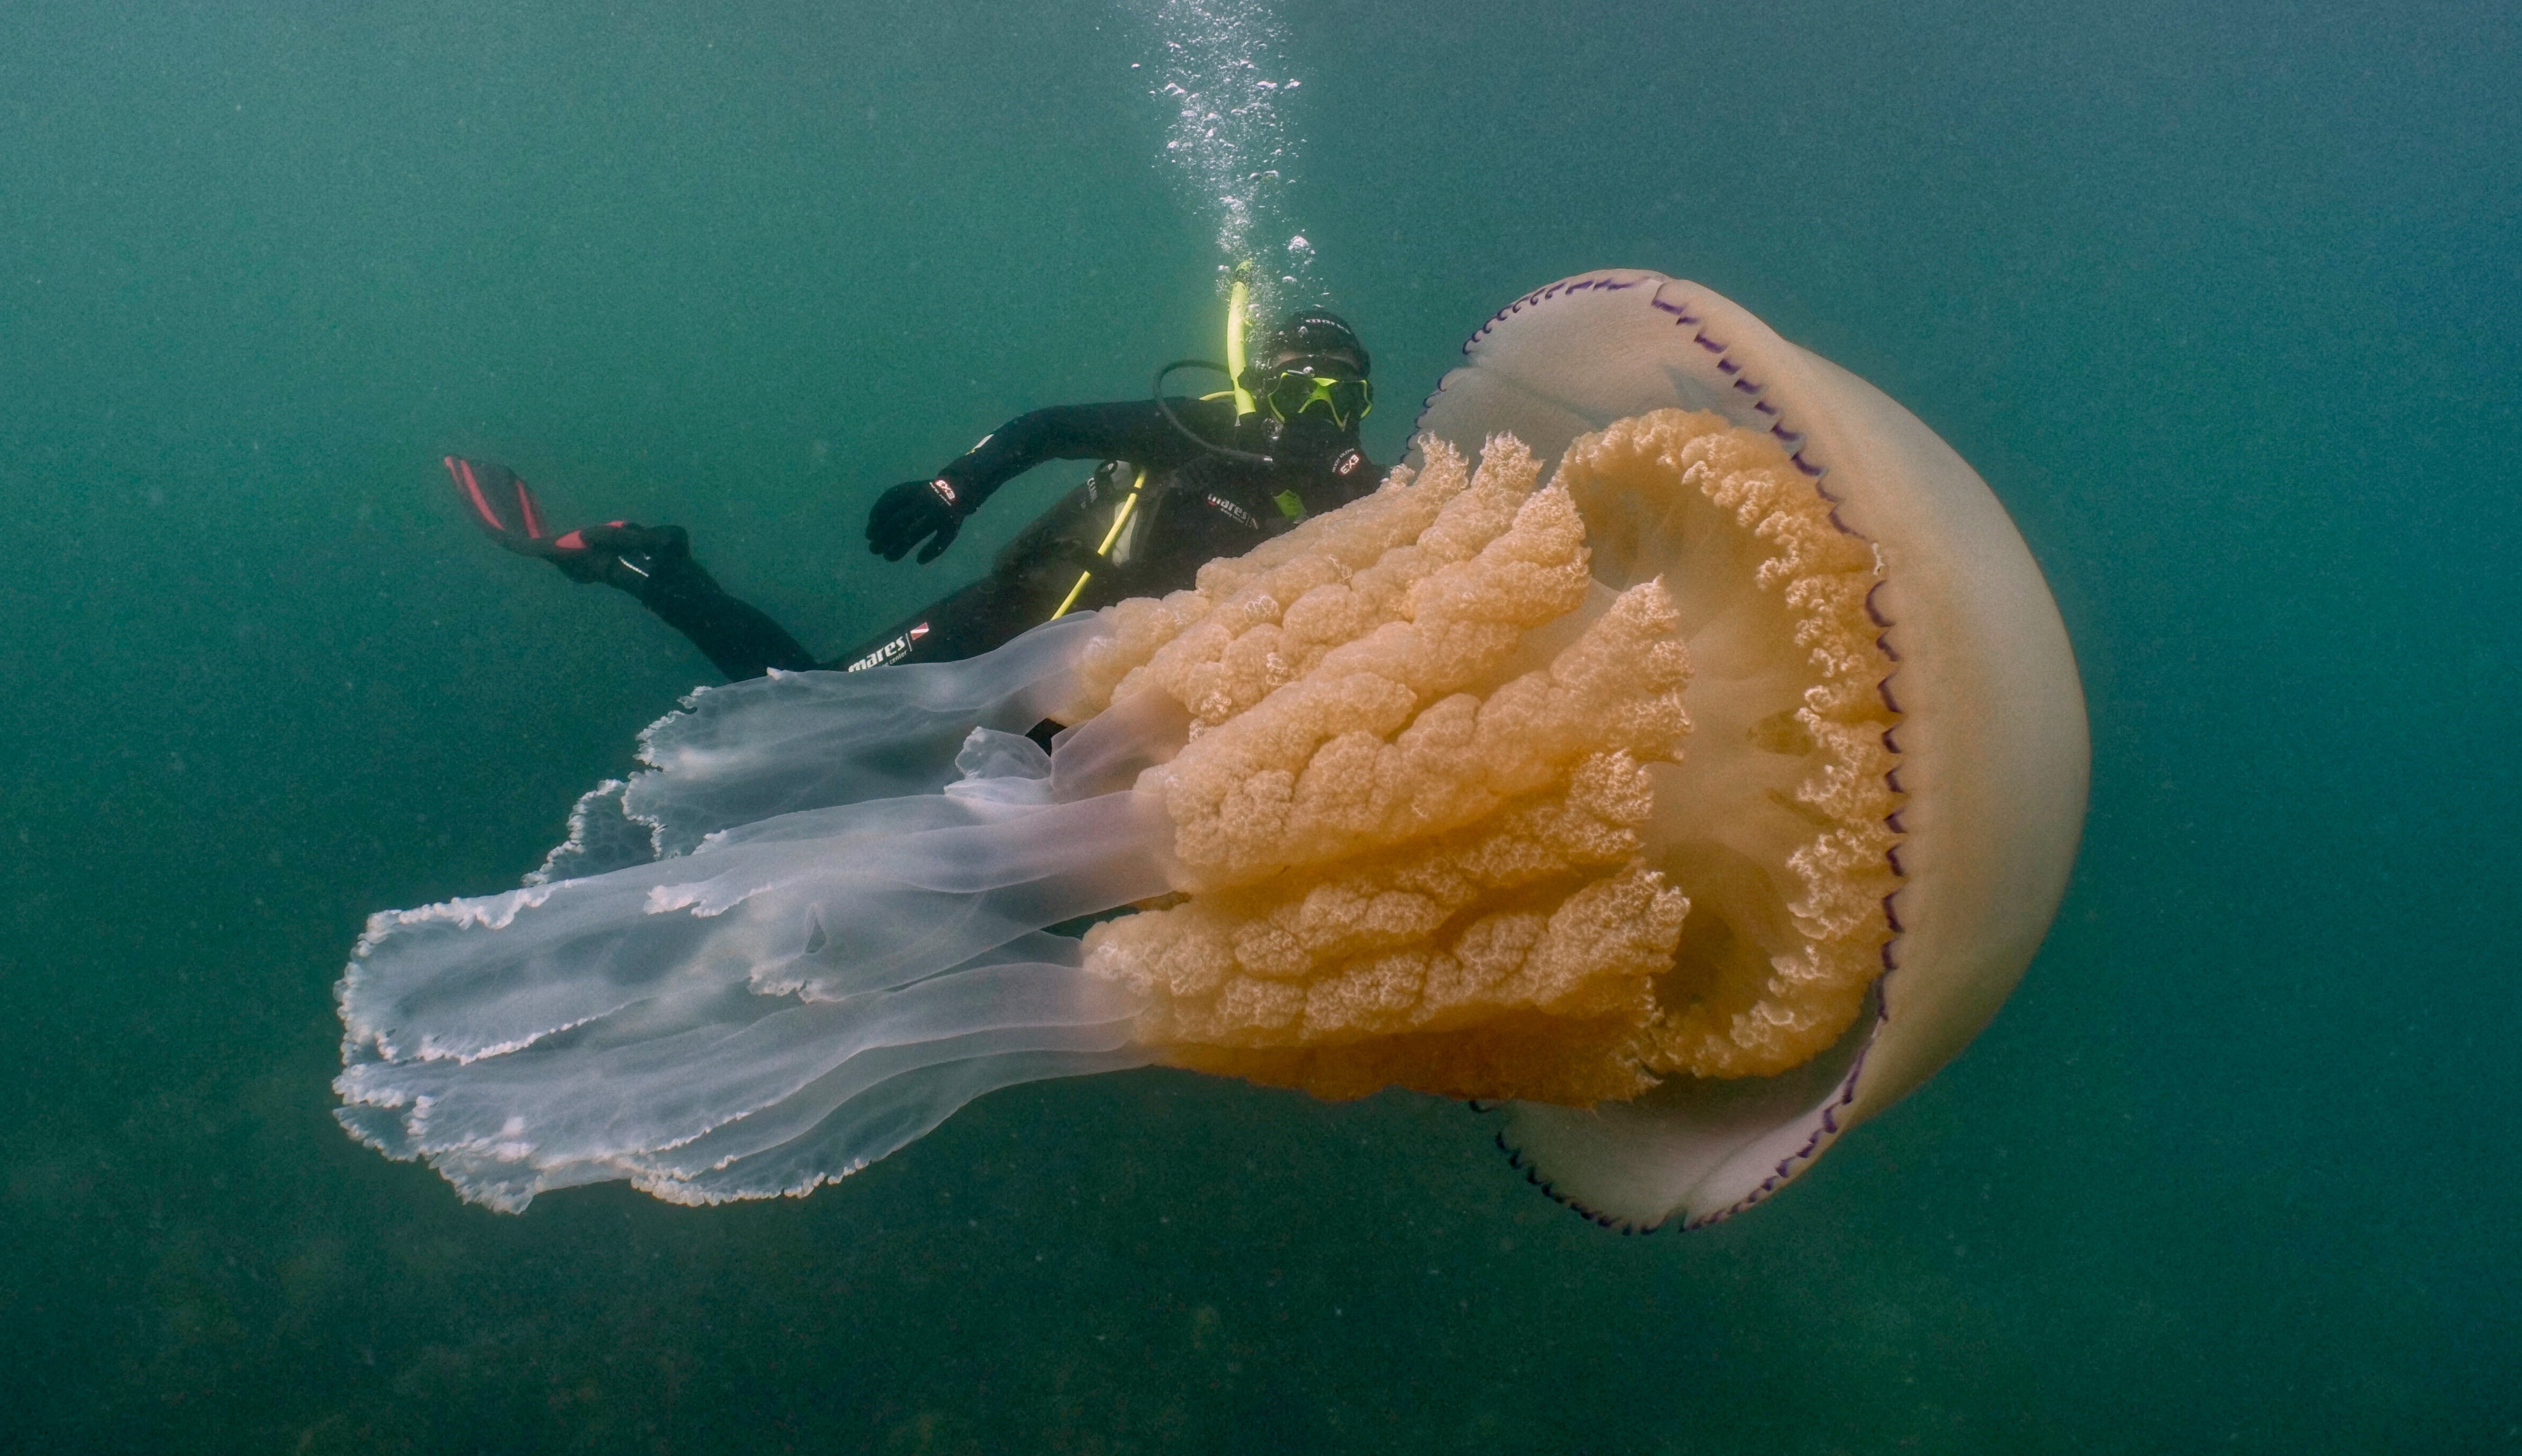 Lizzie Daly with a Jellyfish off the cost of Cornwall, Photo by Dan Abbott